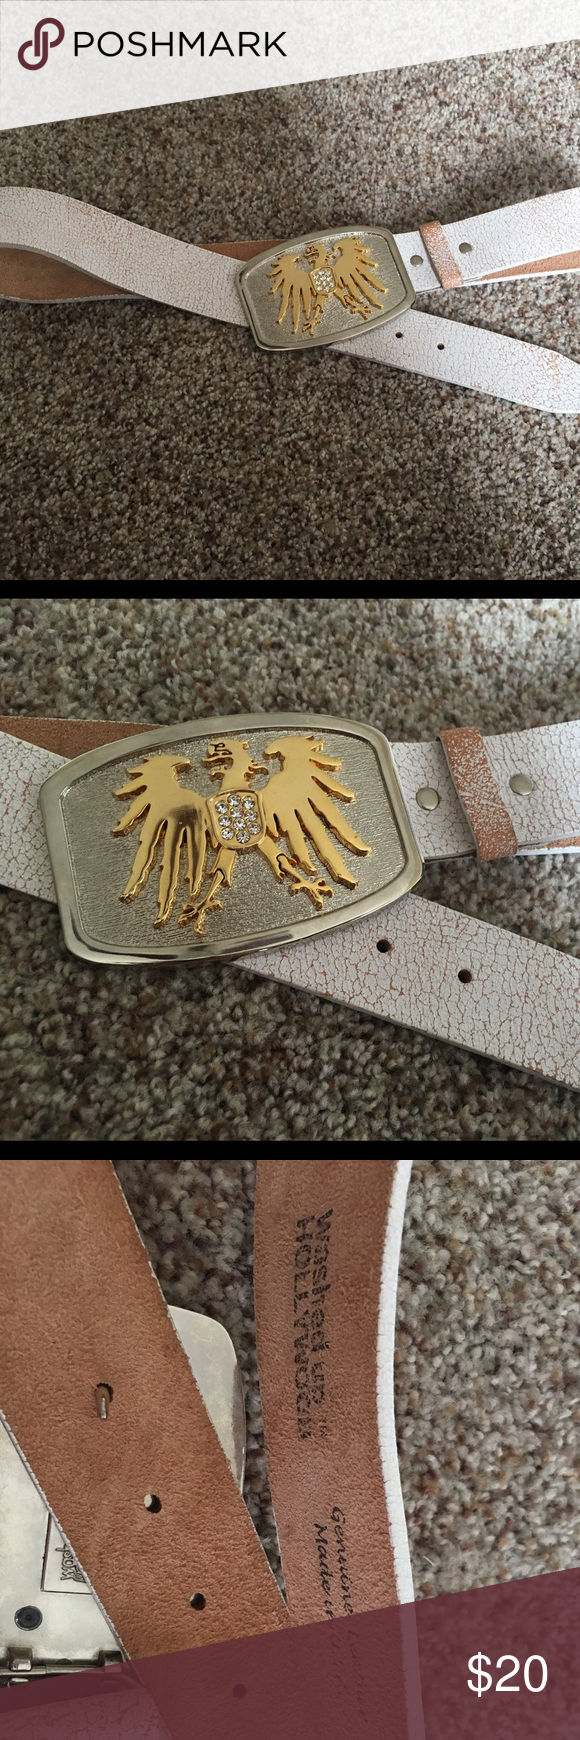 Leather belt Vintage looking leather belt with belt buckle.  Belt is genuine leather and should fit a size small/ medium waist 28 inches  ( according to size chart) Washed up hollywood Accessories Belts